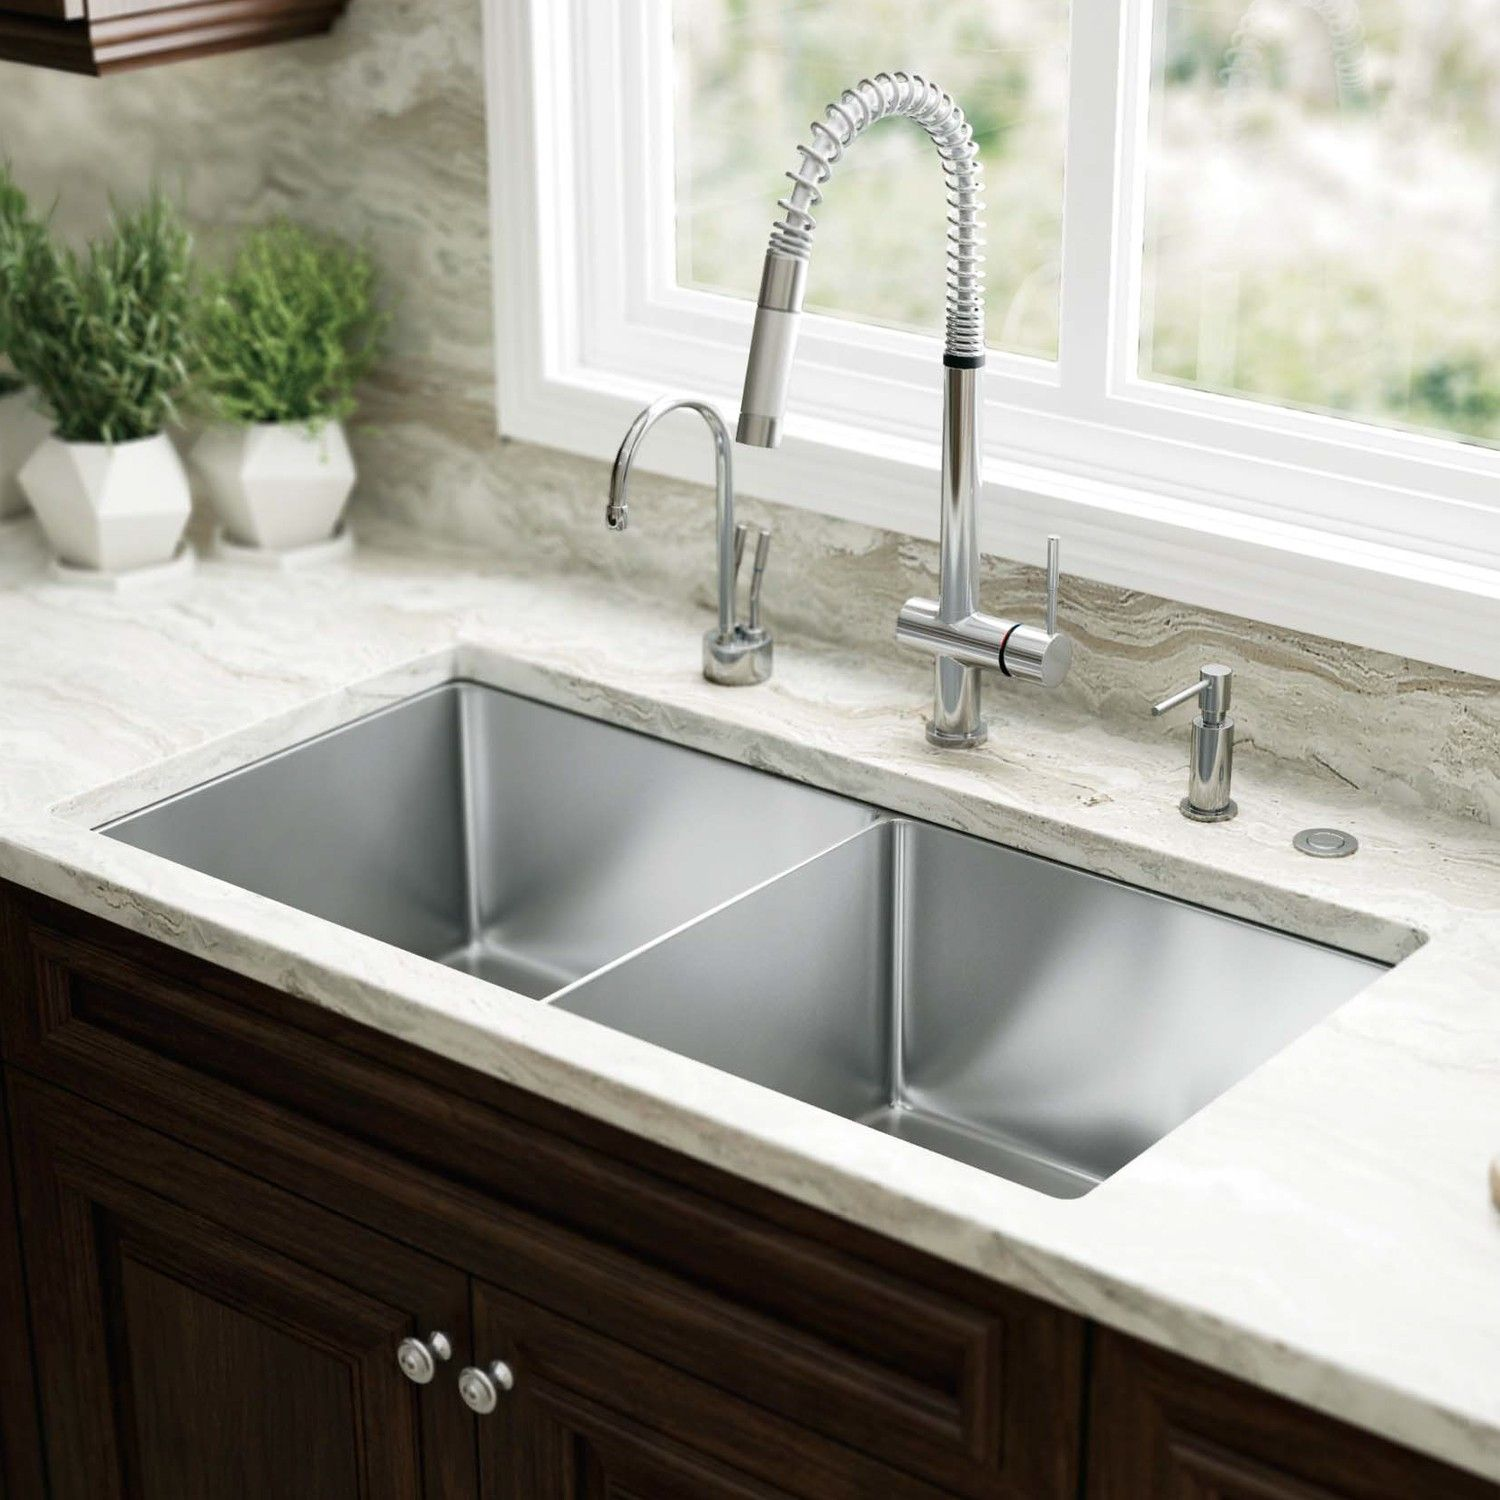 With simple form and sleek aesthetics, the Professional Deep Single Bowl Undermount  Kitchen Sink will